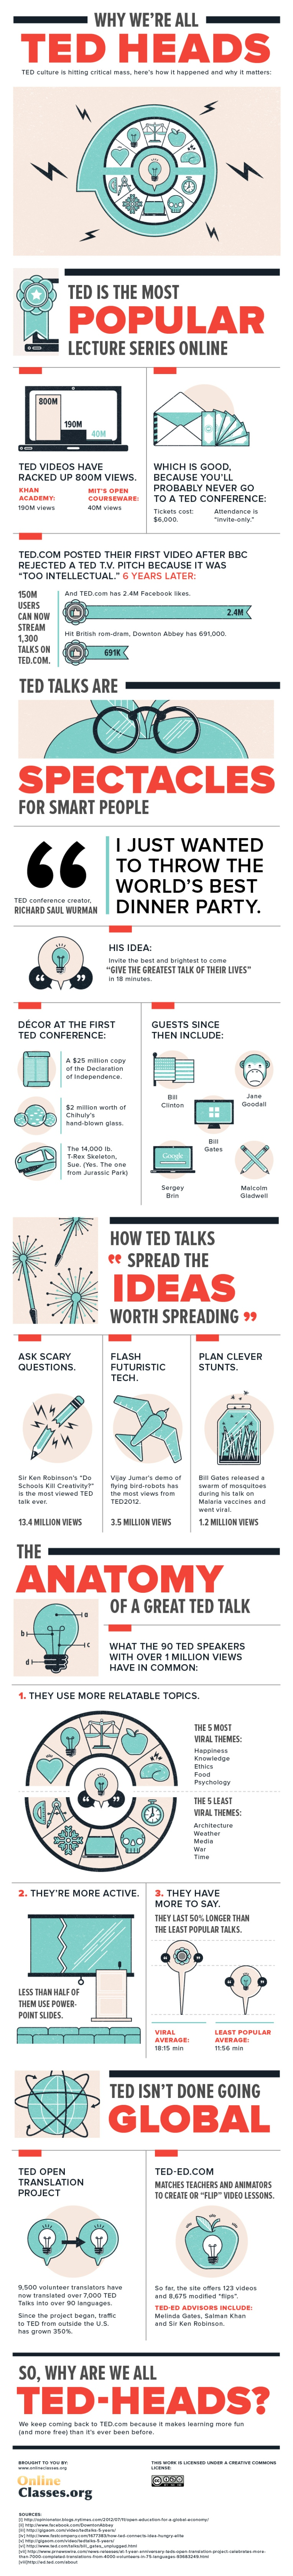 Why I help organize TEDx conferences!